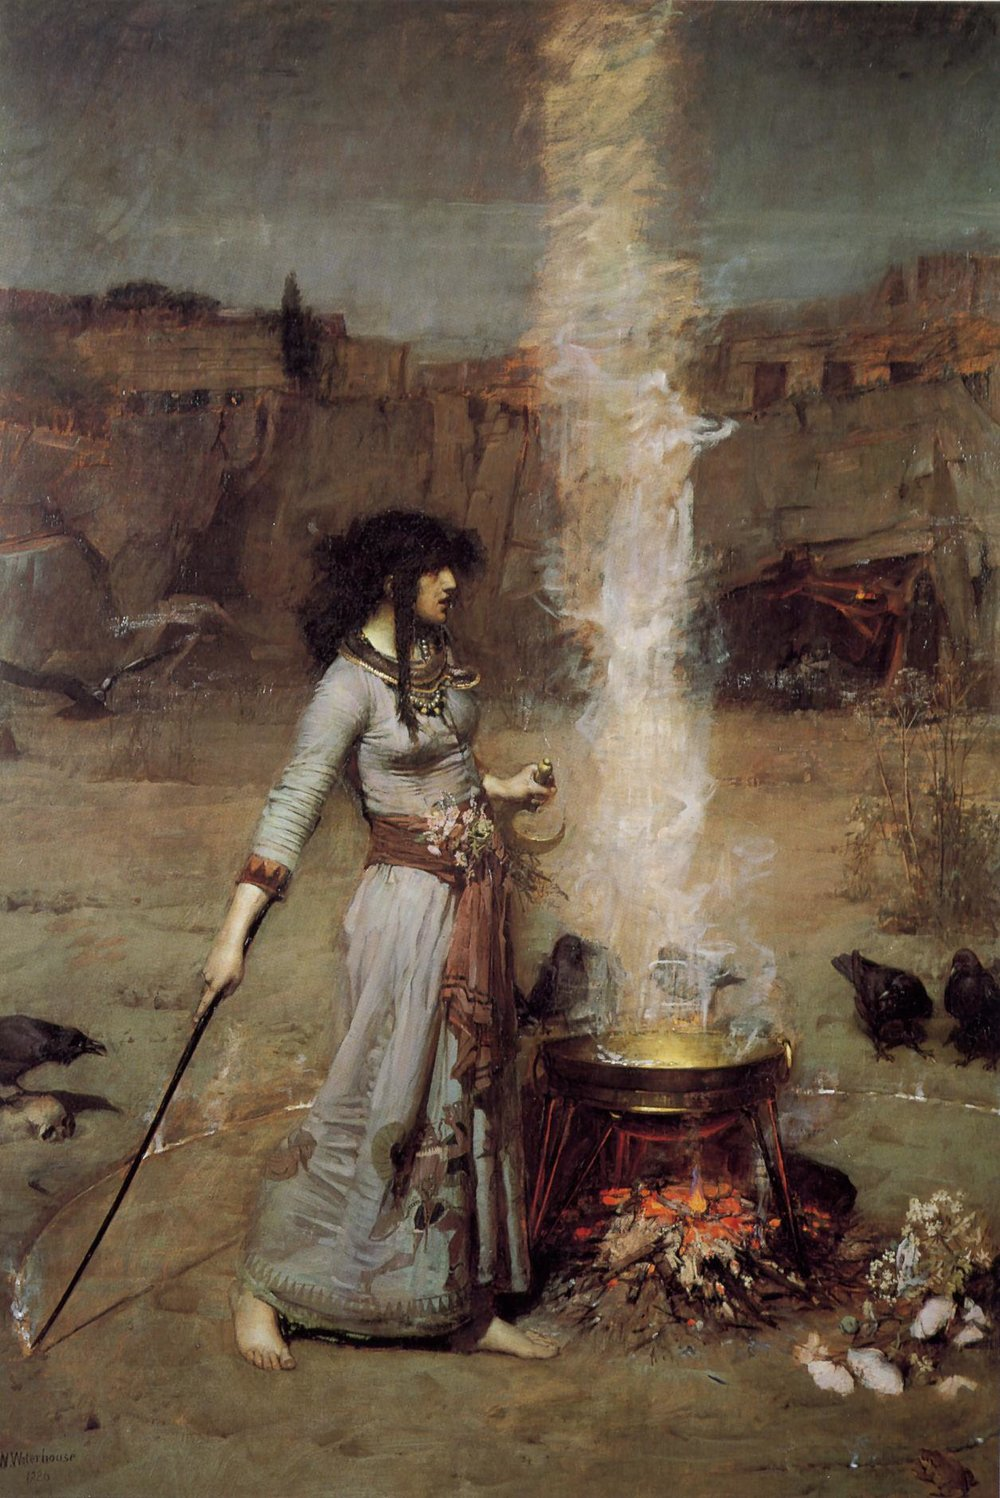 Waterhouse, John William. (1886)  Magic Circle.  Retrieved from: Wikimedia Commons website:  https://commons.wikimedia.org/wiki/File:John_William_Waterhouse_